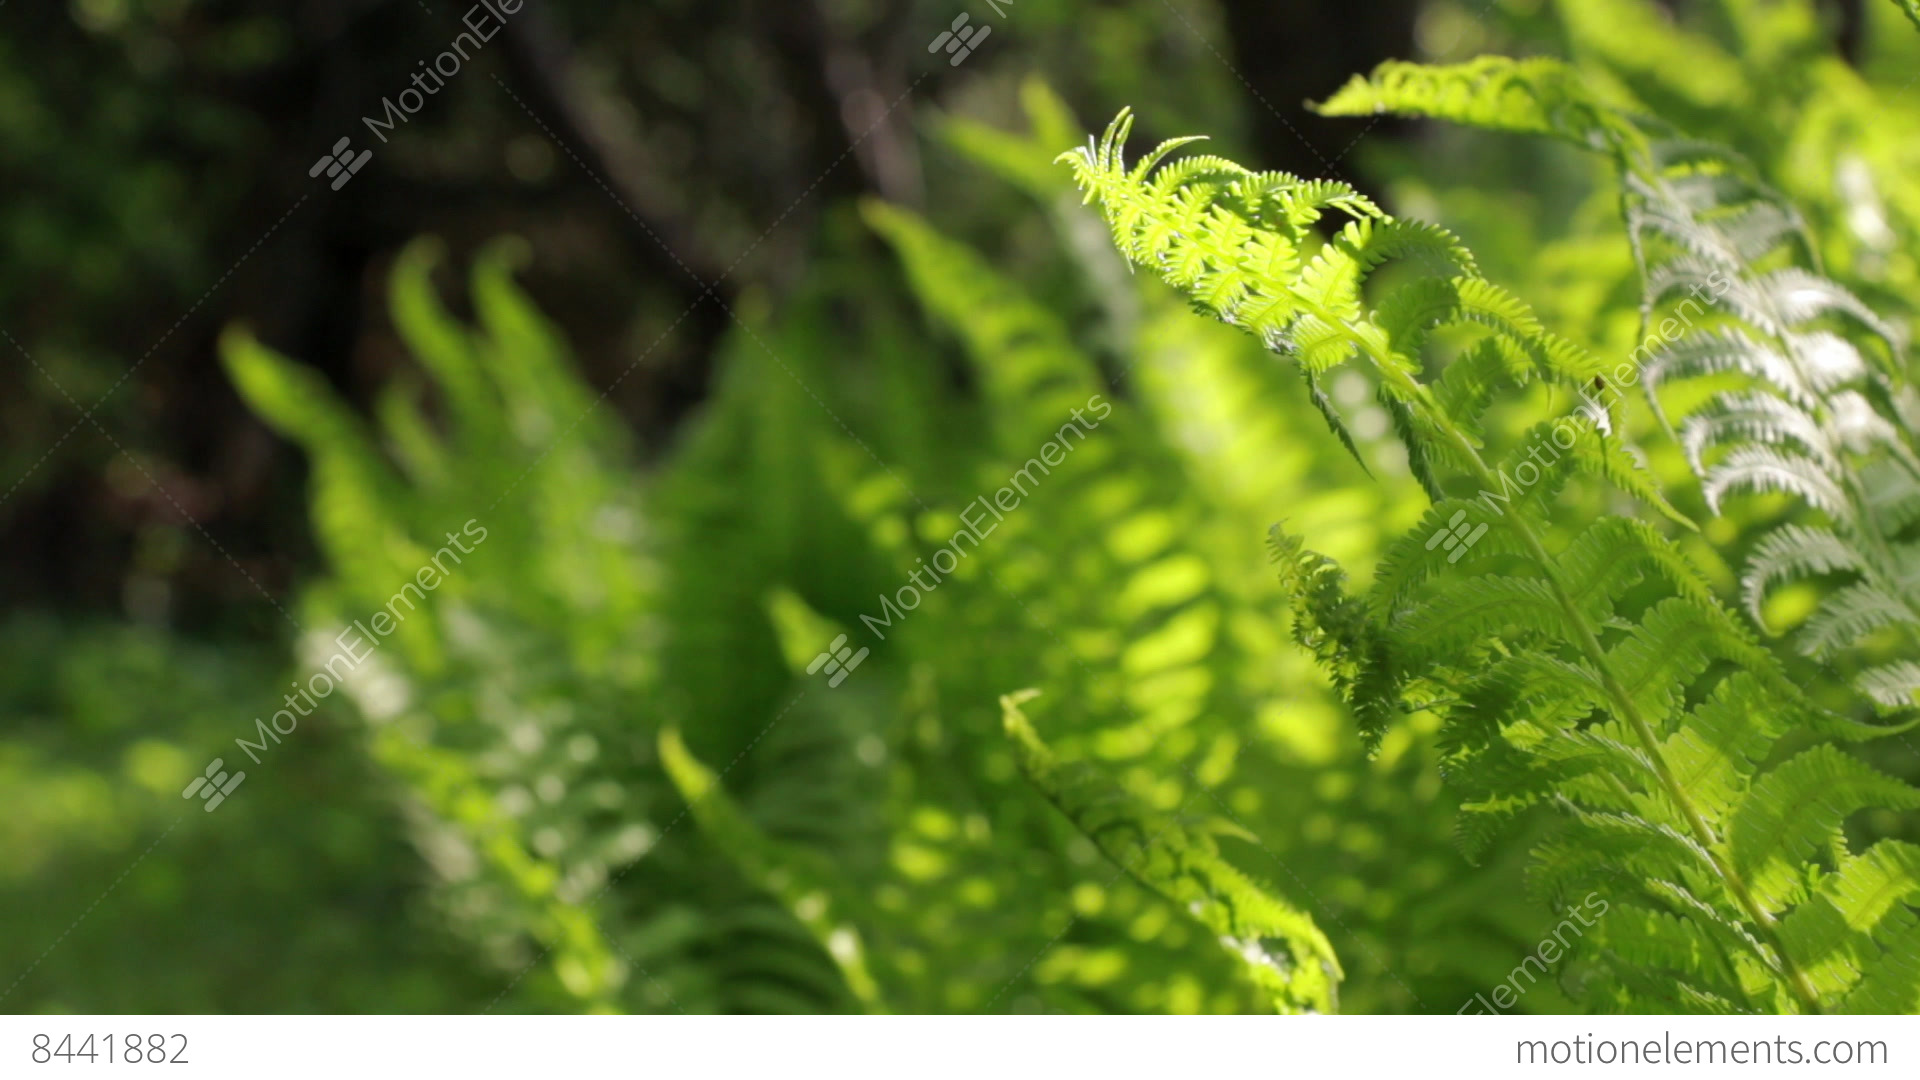 Rack Focus Shot Of Green Ostrich Fern Leaves Stock Video Footage ...